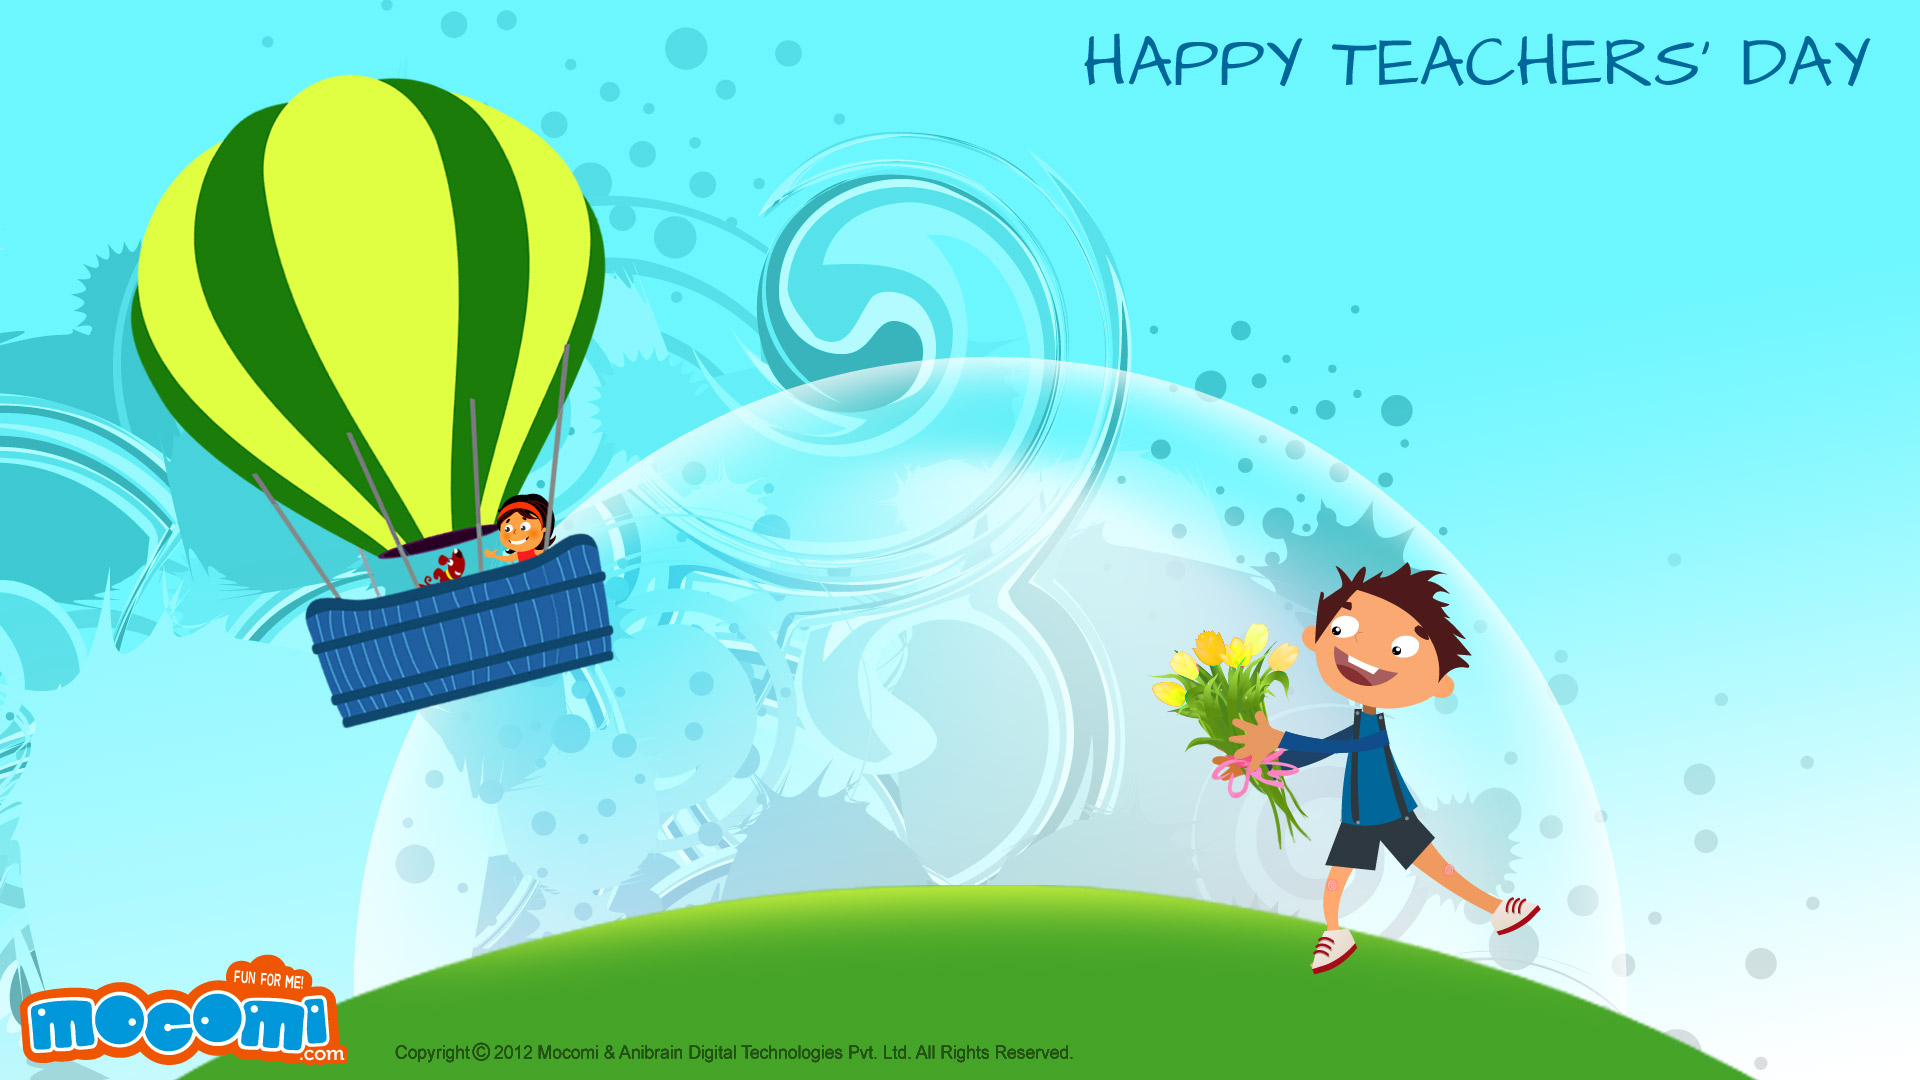 teachers day 2012 essay in english 91 121 113 106 essay on teacher day ddns net